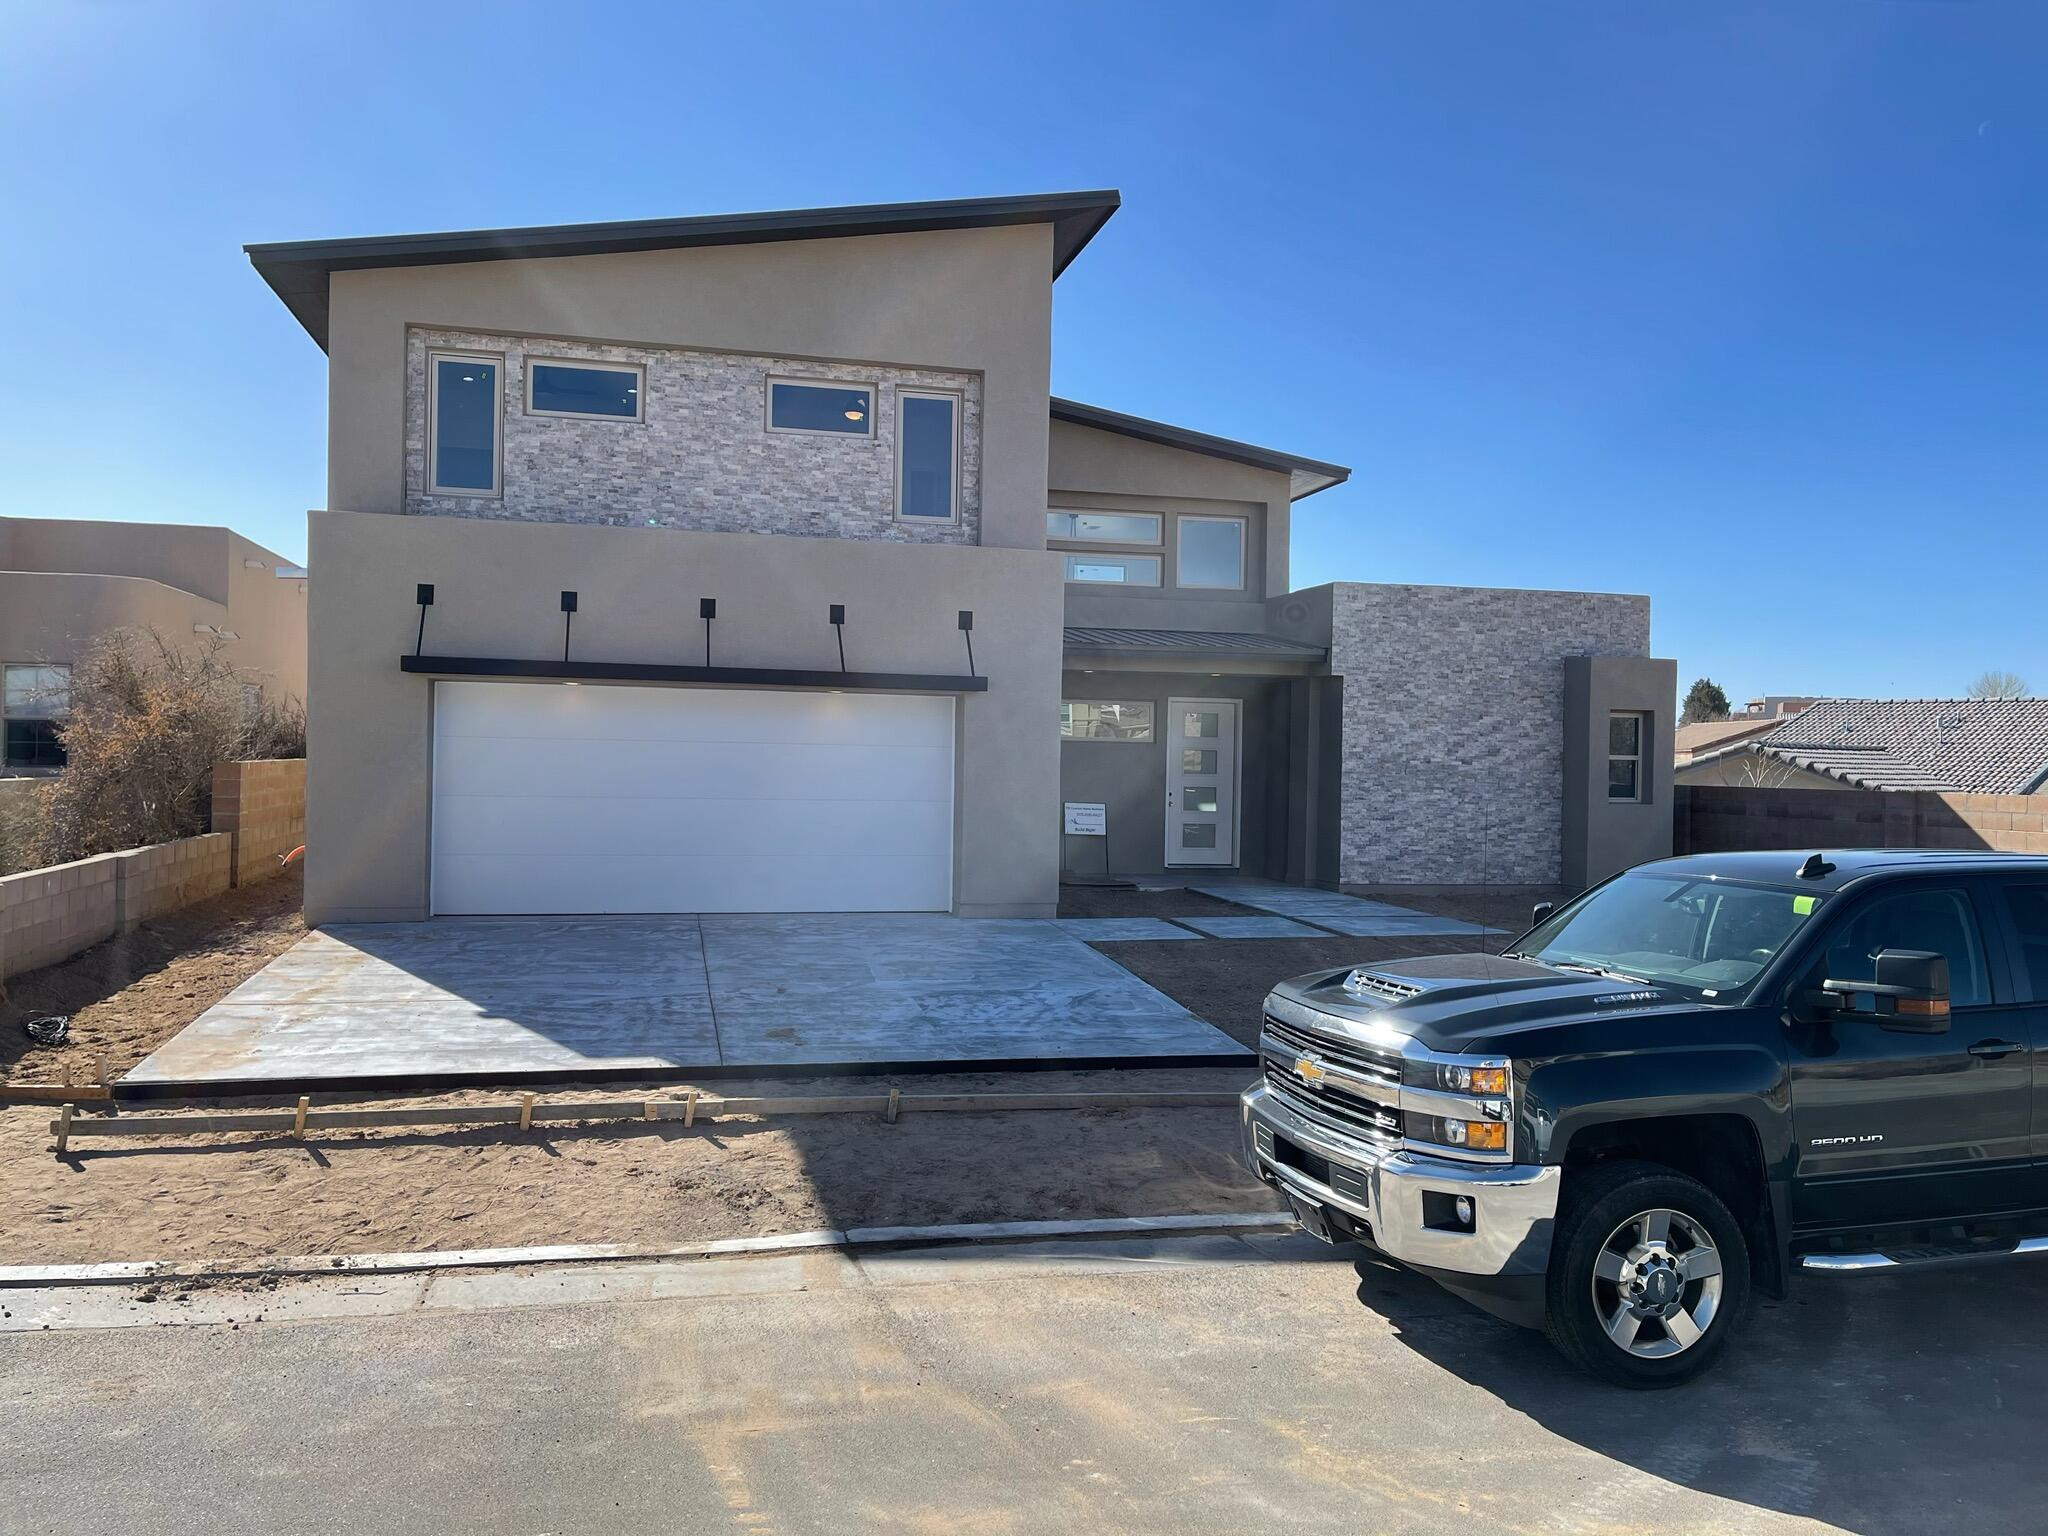 AMAZING new custom home under construction in the Knolls of Paradise community! Home features all the extras with upgraded appliances, expansive spaces, outdoor fireplace to enjoy while experincing the beautiful views.  All this while being located only a couple of minutes from Cottonwood Mall, Paseo Del Norte, Rio Grande Bosque and much more.. Master suite on main level. Covered patio and walled backyard.MUST see to appreciate this modern styled beautifully designed home.